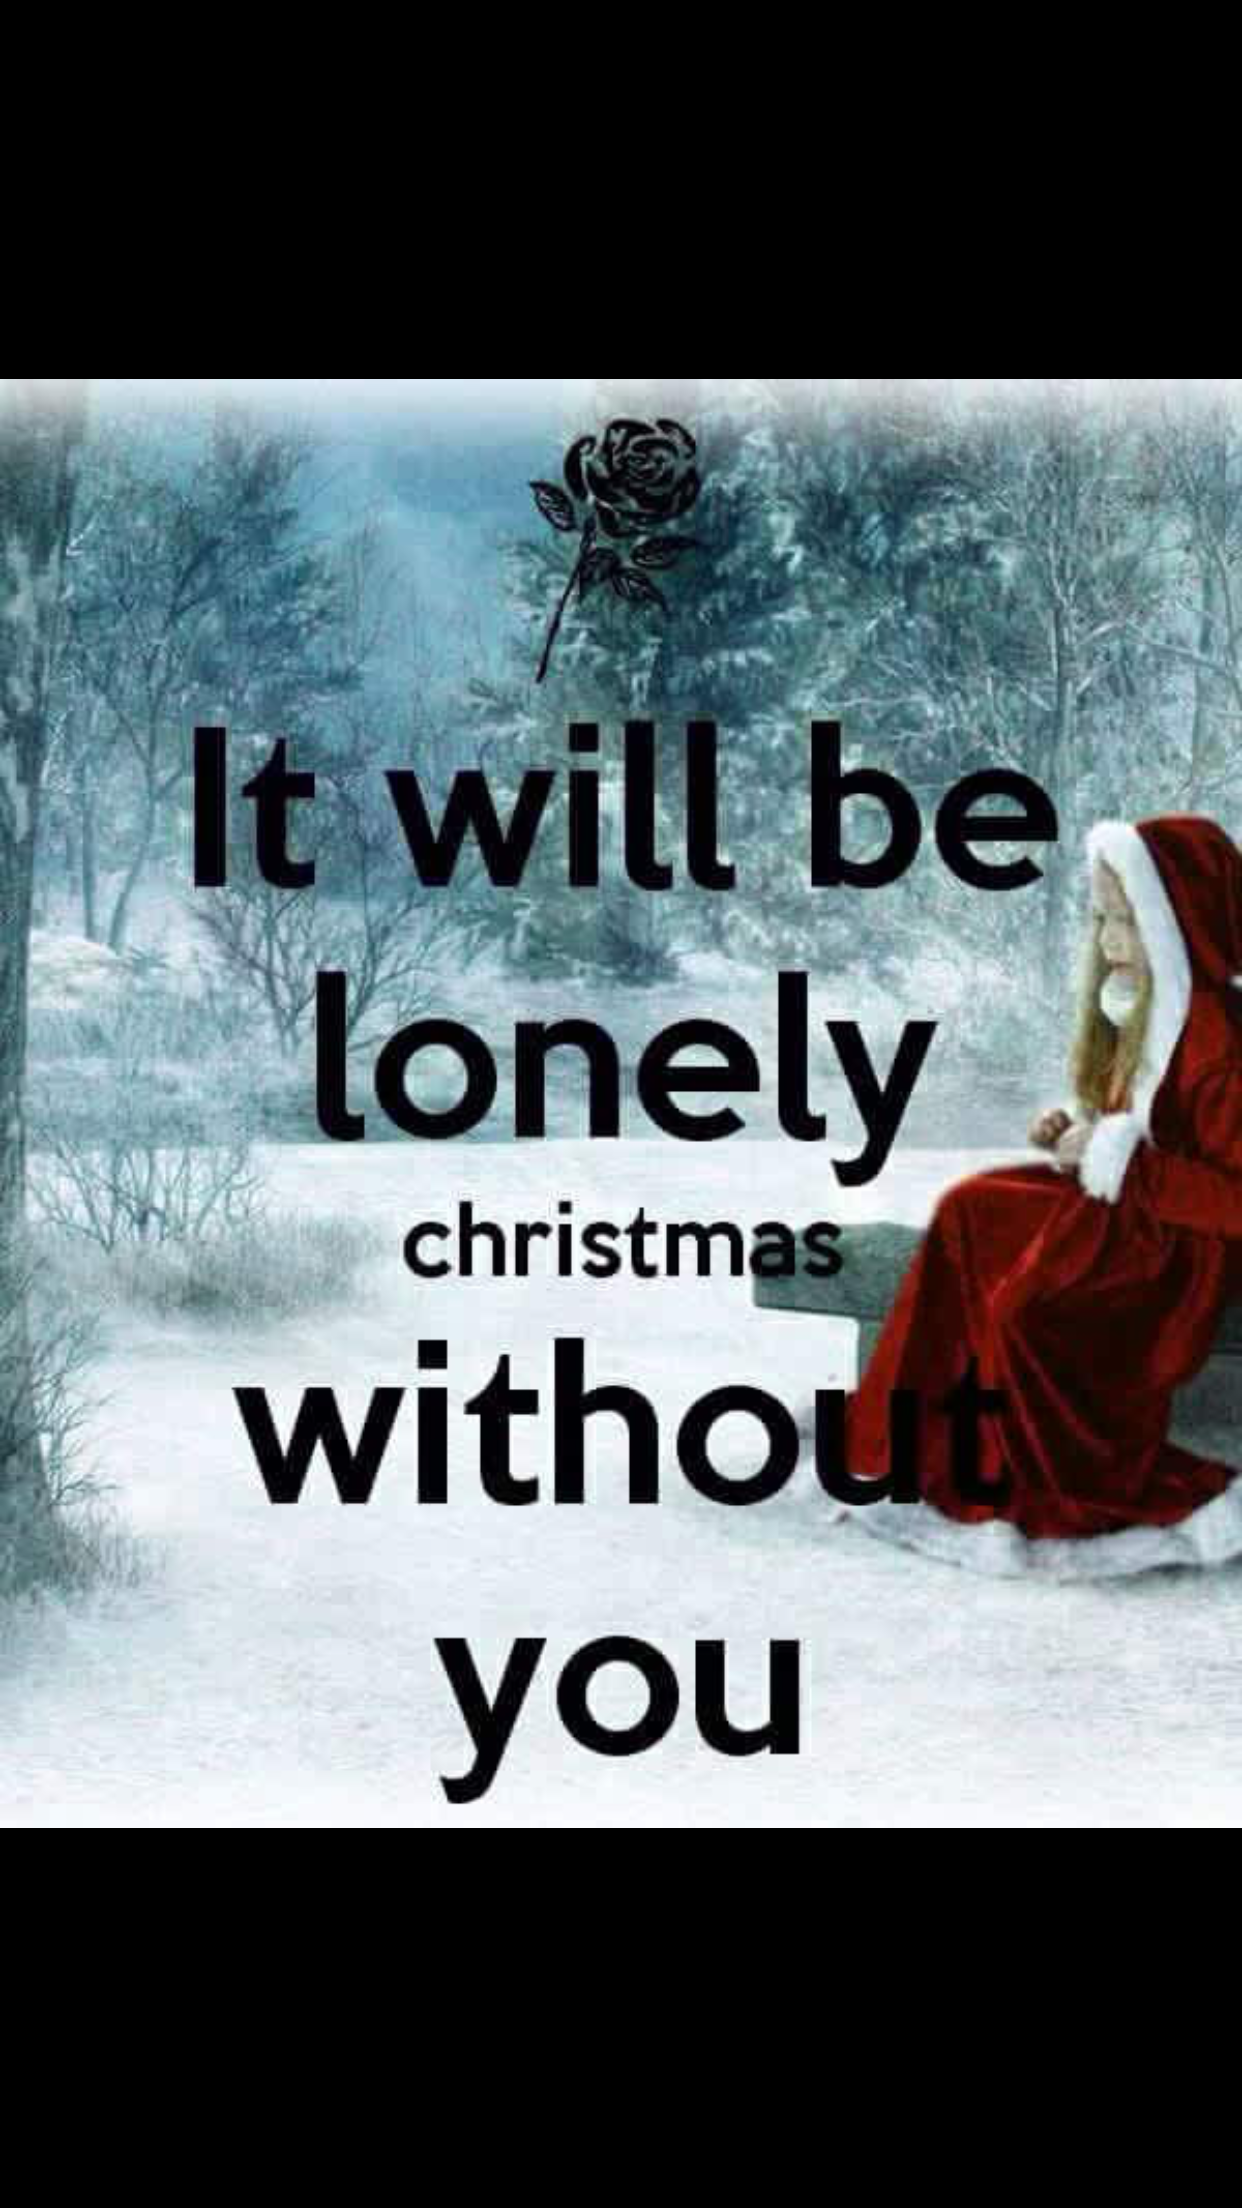 Wish You Were Here Quotes Brian  I Wish You Were Here Not Only On Christmas But Every Day